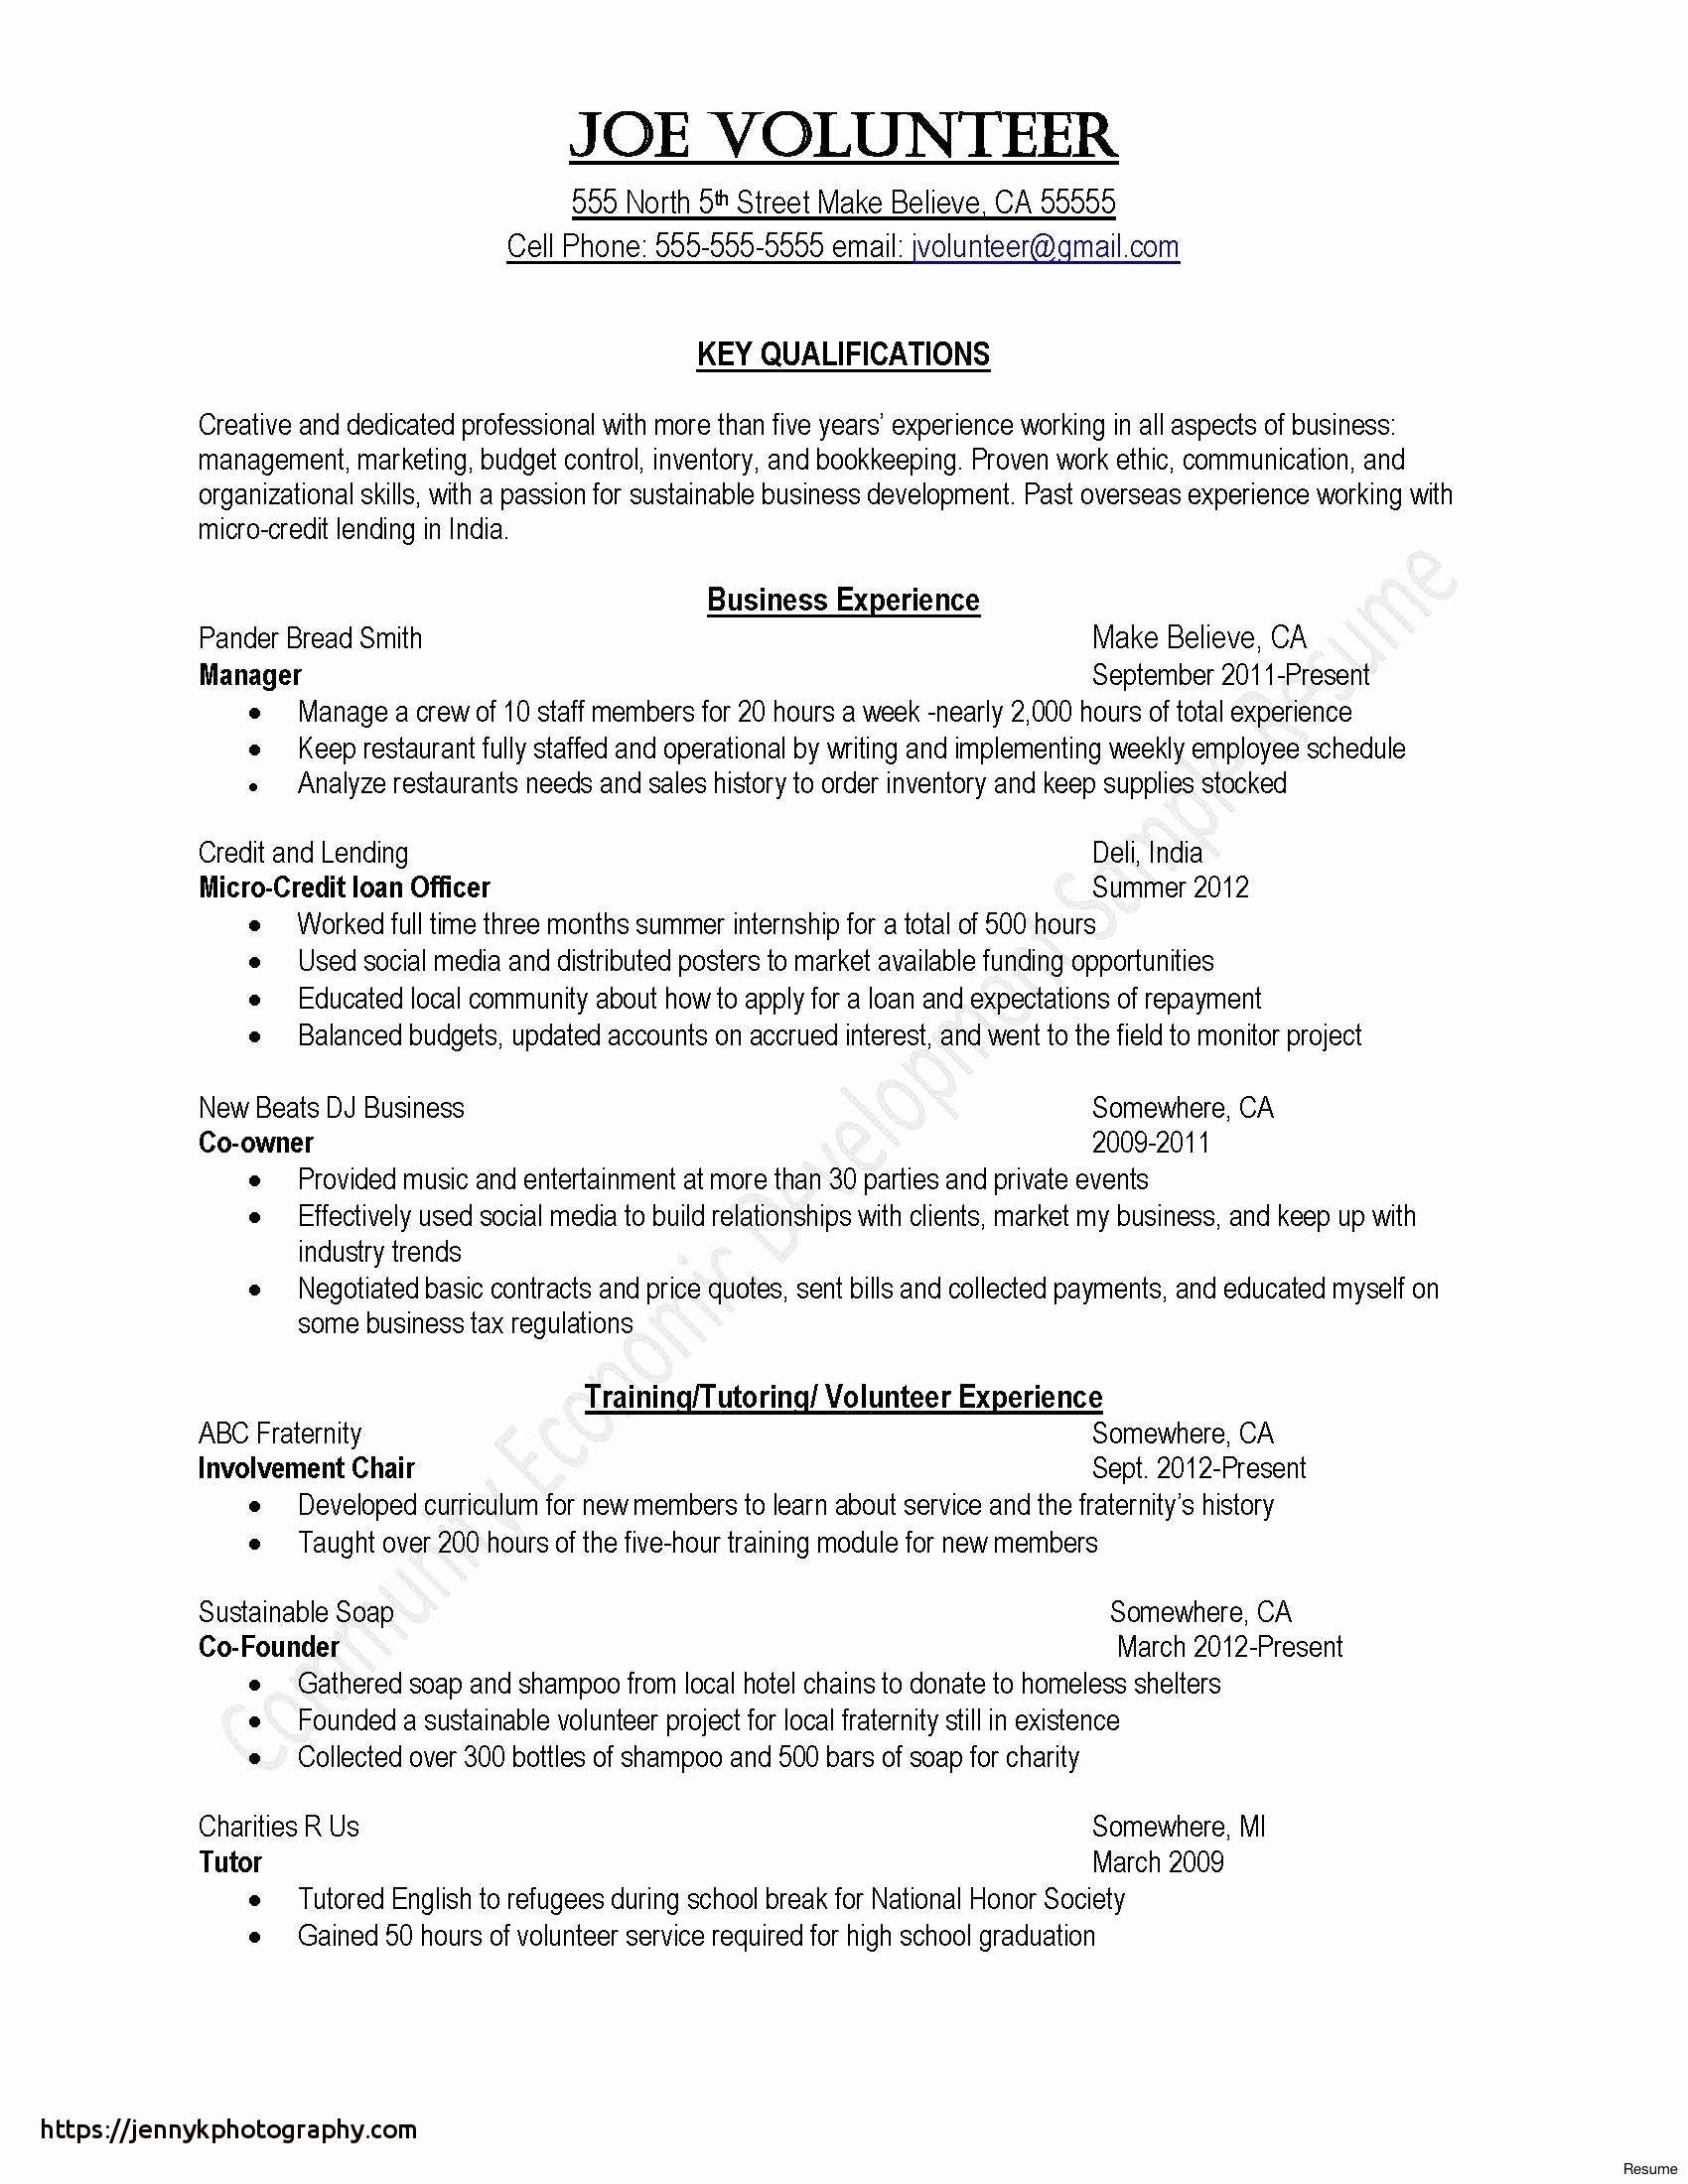 correctional officer resume template Collection-Correctional ficer Cover Letter Lovely Police Ficer Resume Example Luxury Correctional Ficer Skills 31 Awesome 13-h